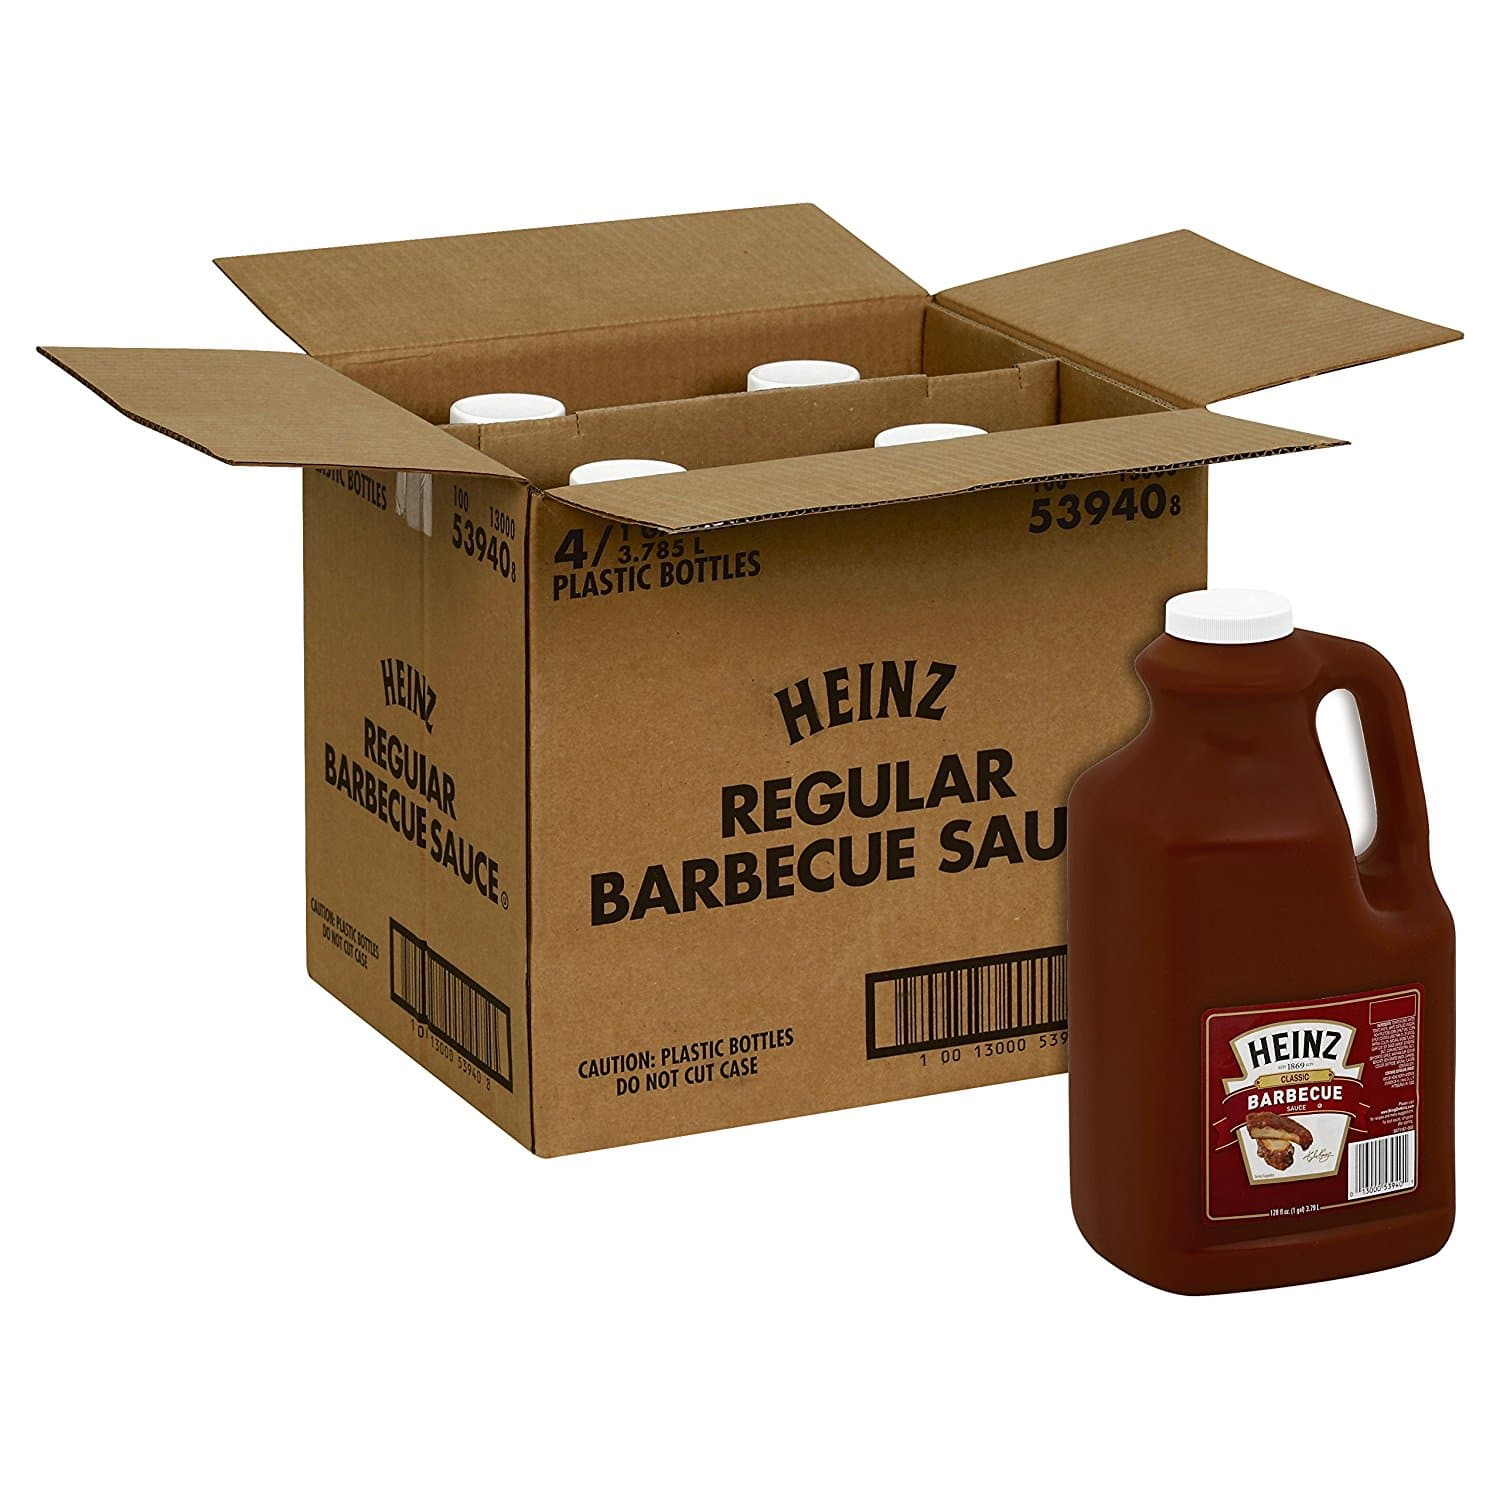 4-Count 1 gal. Heinz Reg. BBQ $21.06 AC or Hickory Smoke BBQ Sauce $16.63 & More AC & w/5% SS